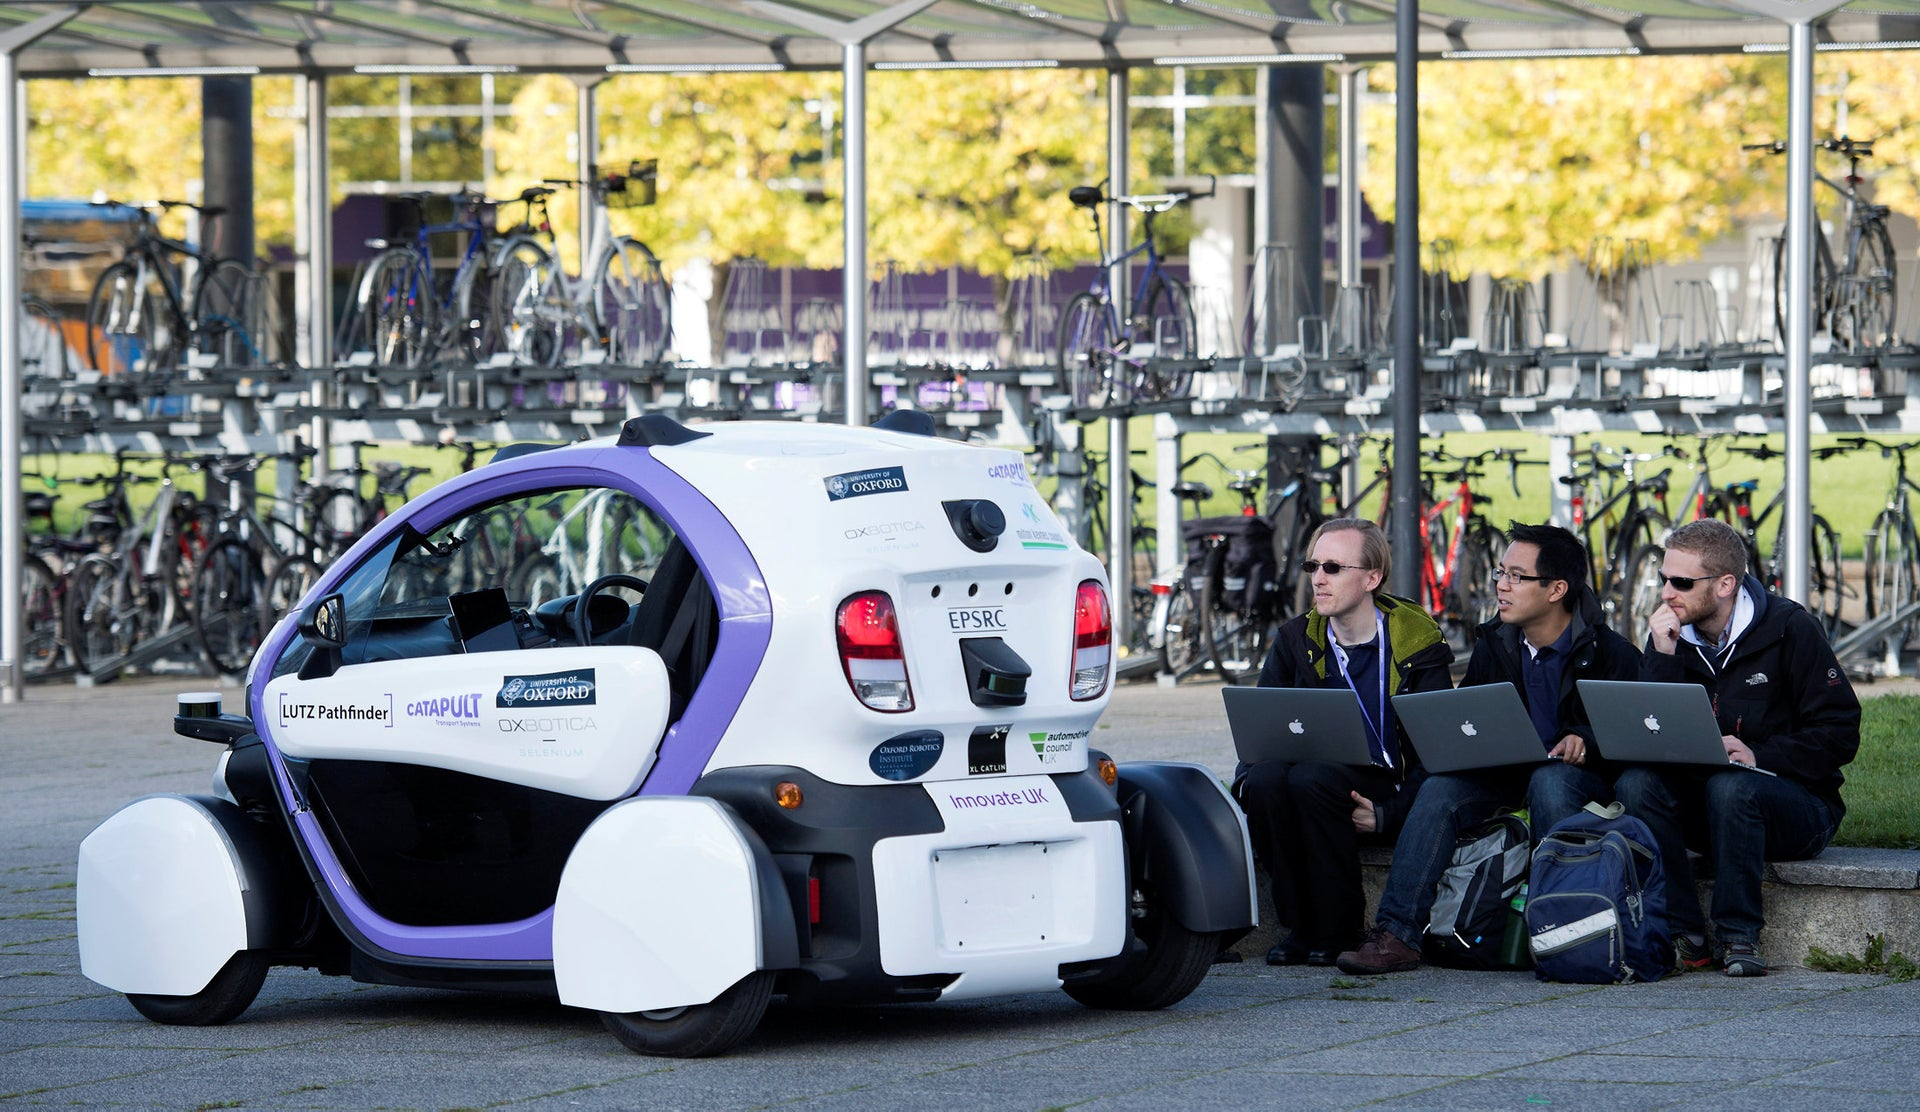 Technicans analise data follwong the trial of an autonomous self-driving vehicle in a pedestrianised zone, during a media event in Milton Keynes, north of London, on October 11, 2016